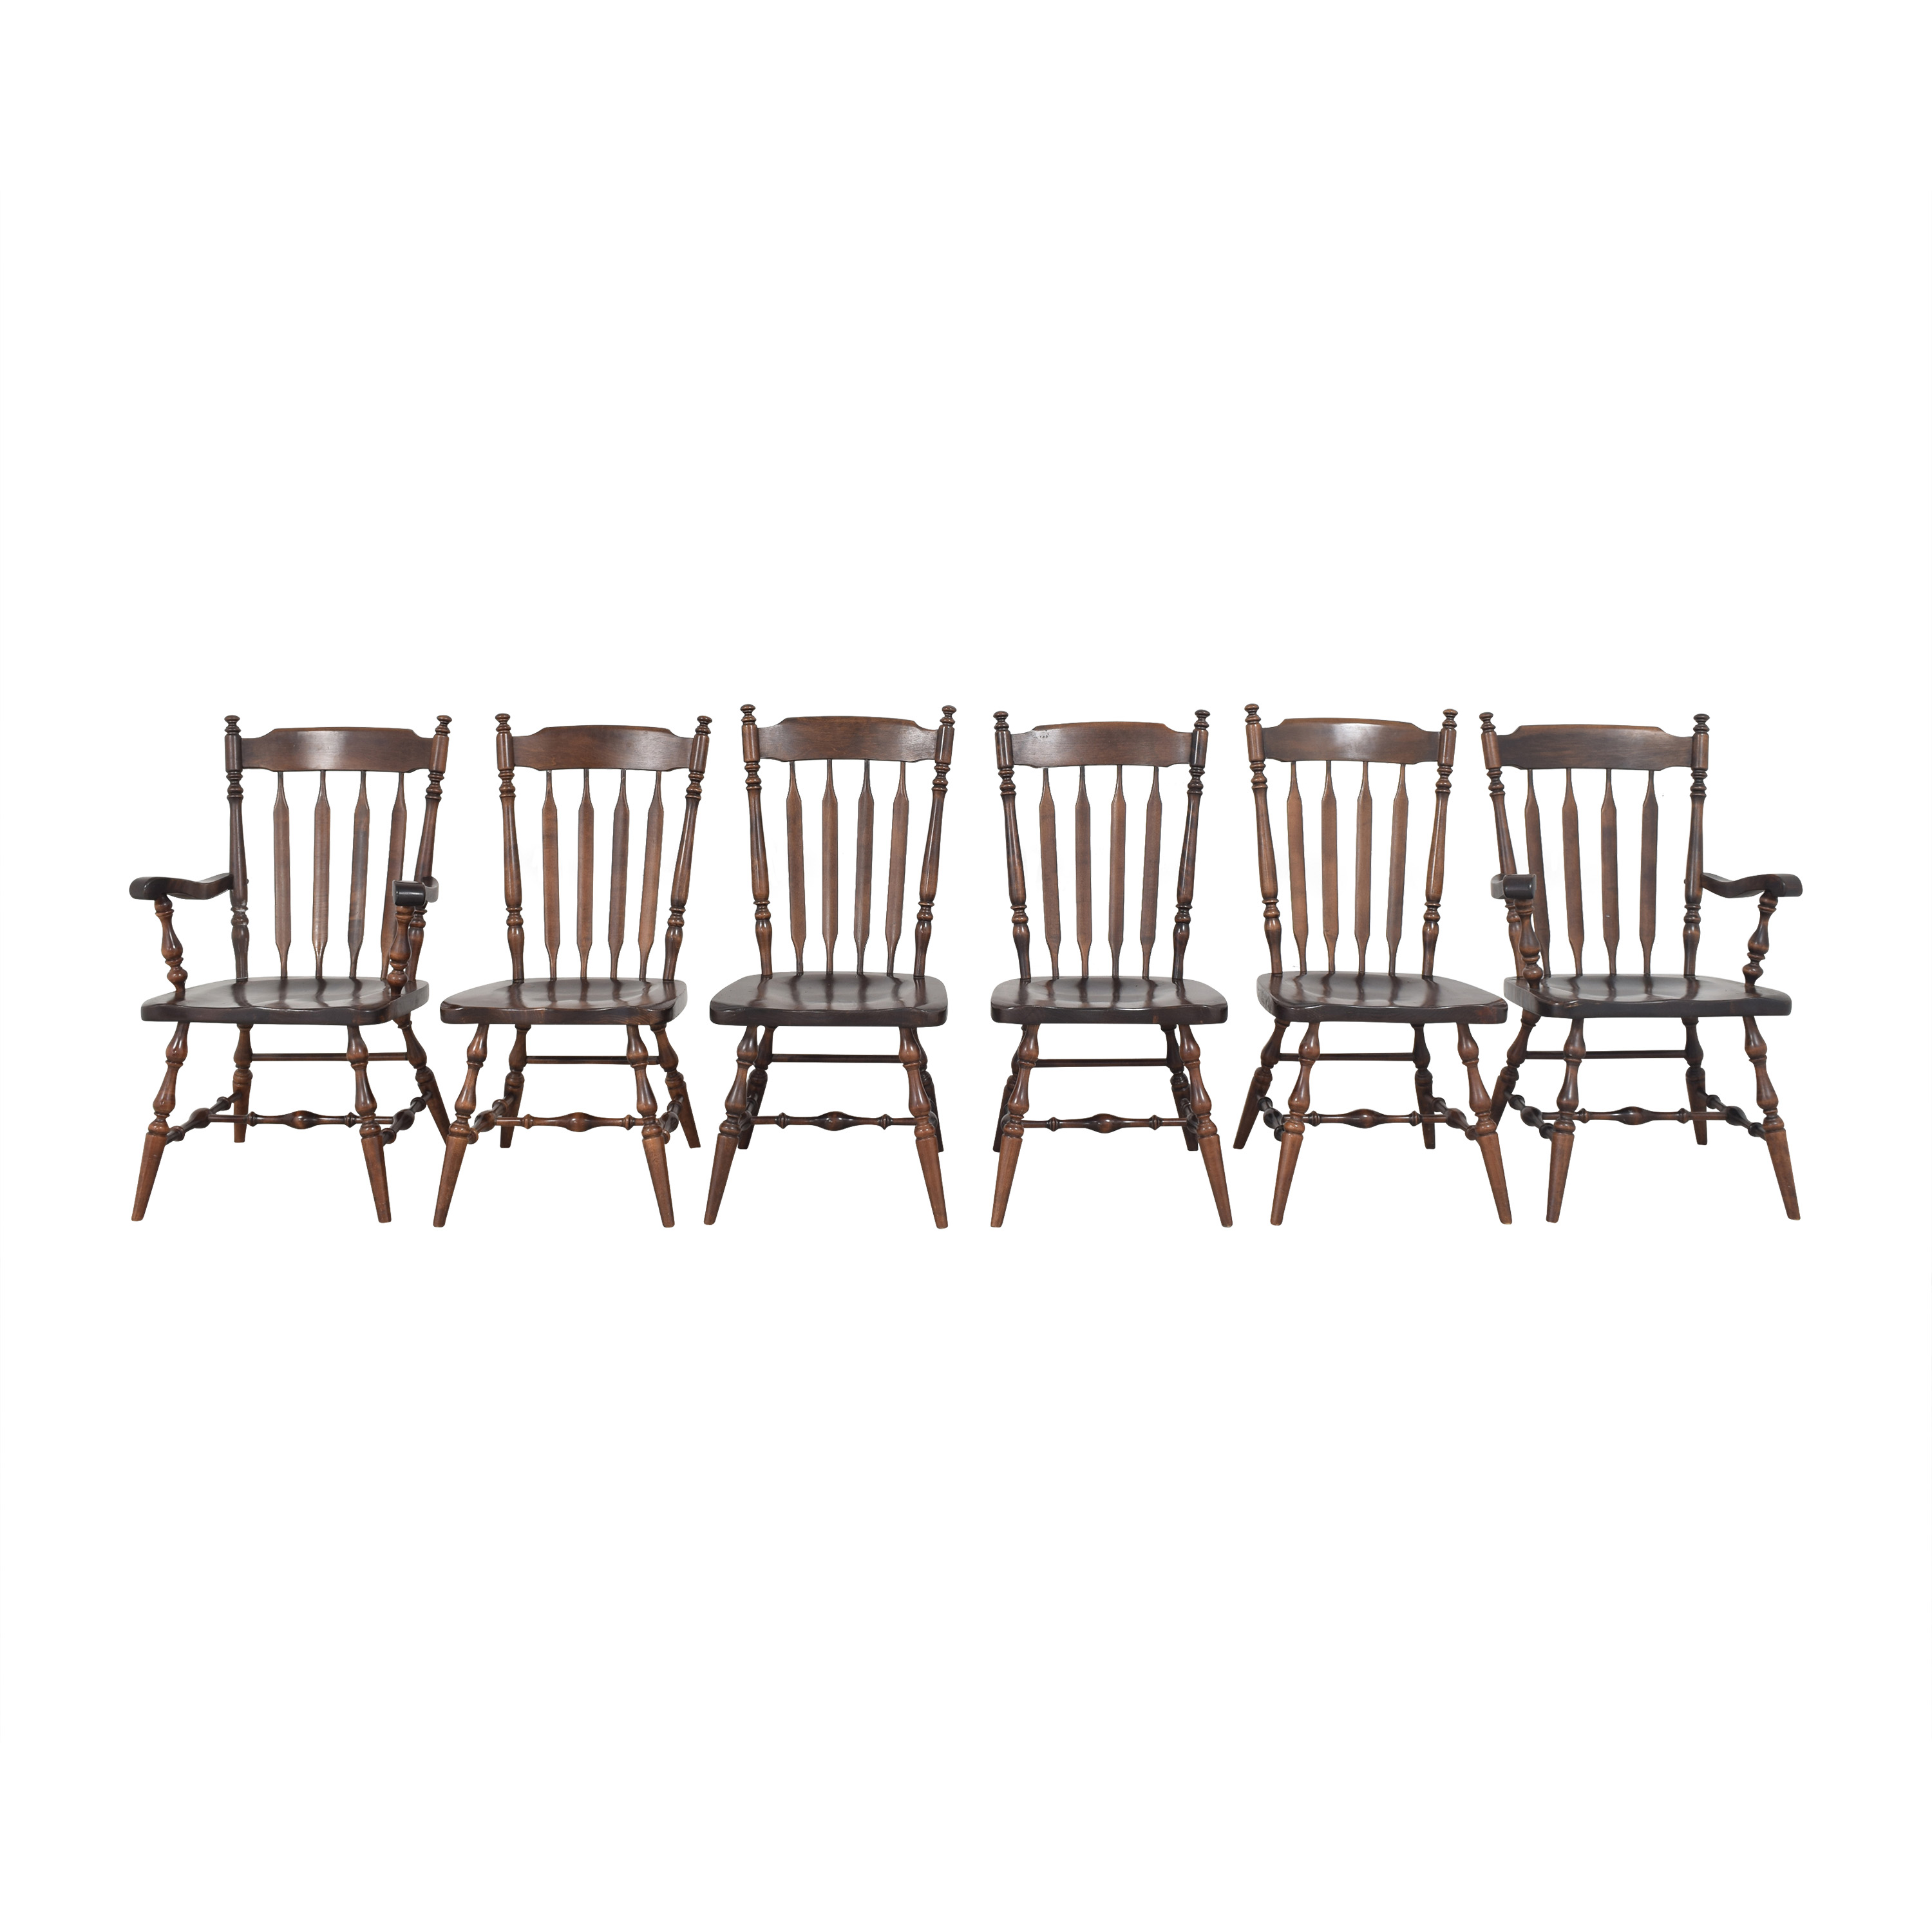 buy Ethan Allen Windsor Dining Chairs Ethan Allen Chairs